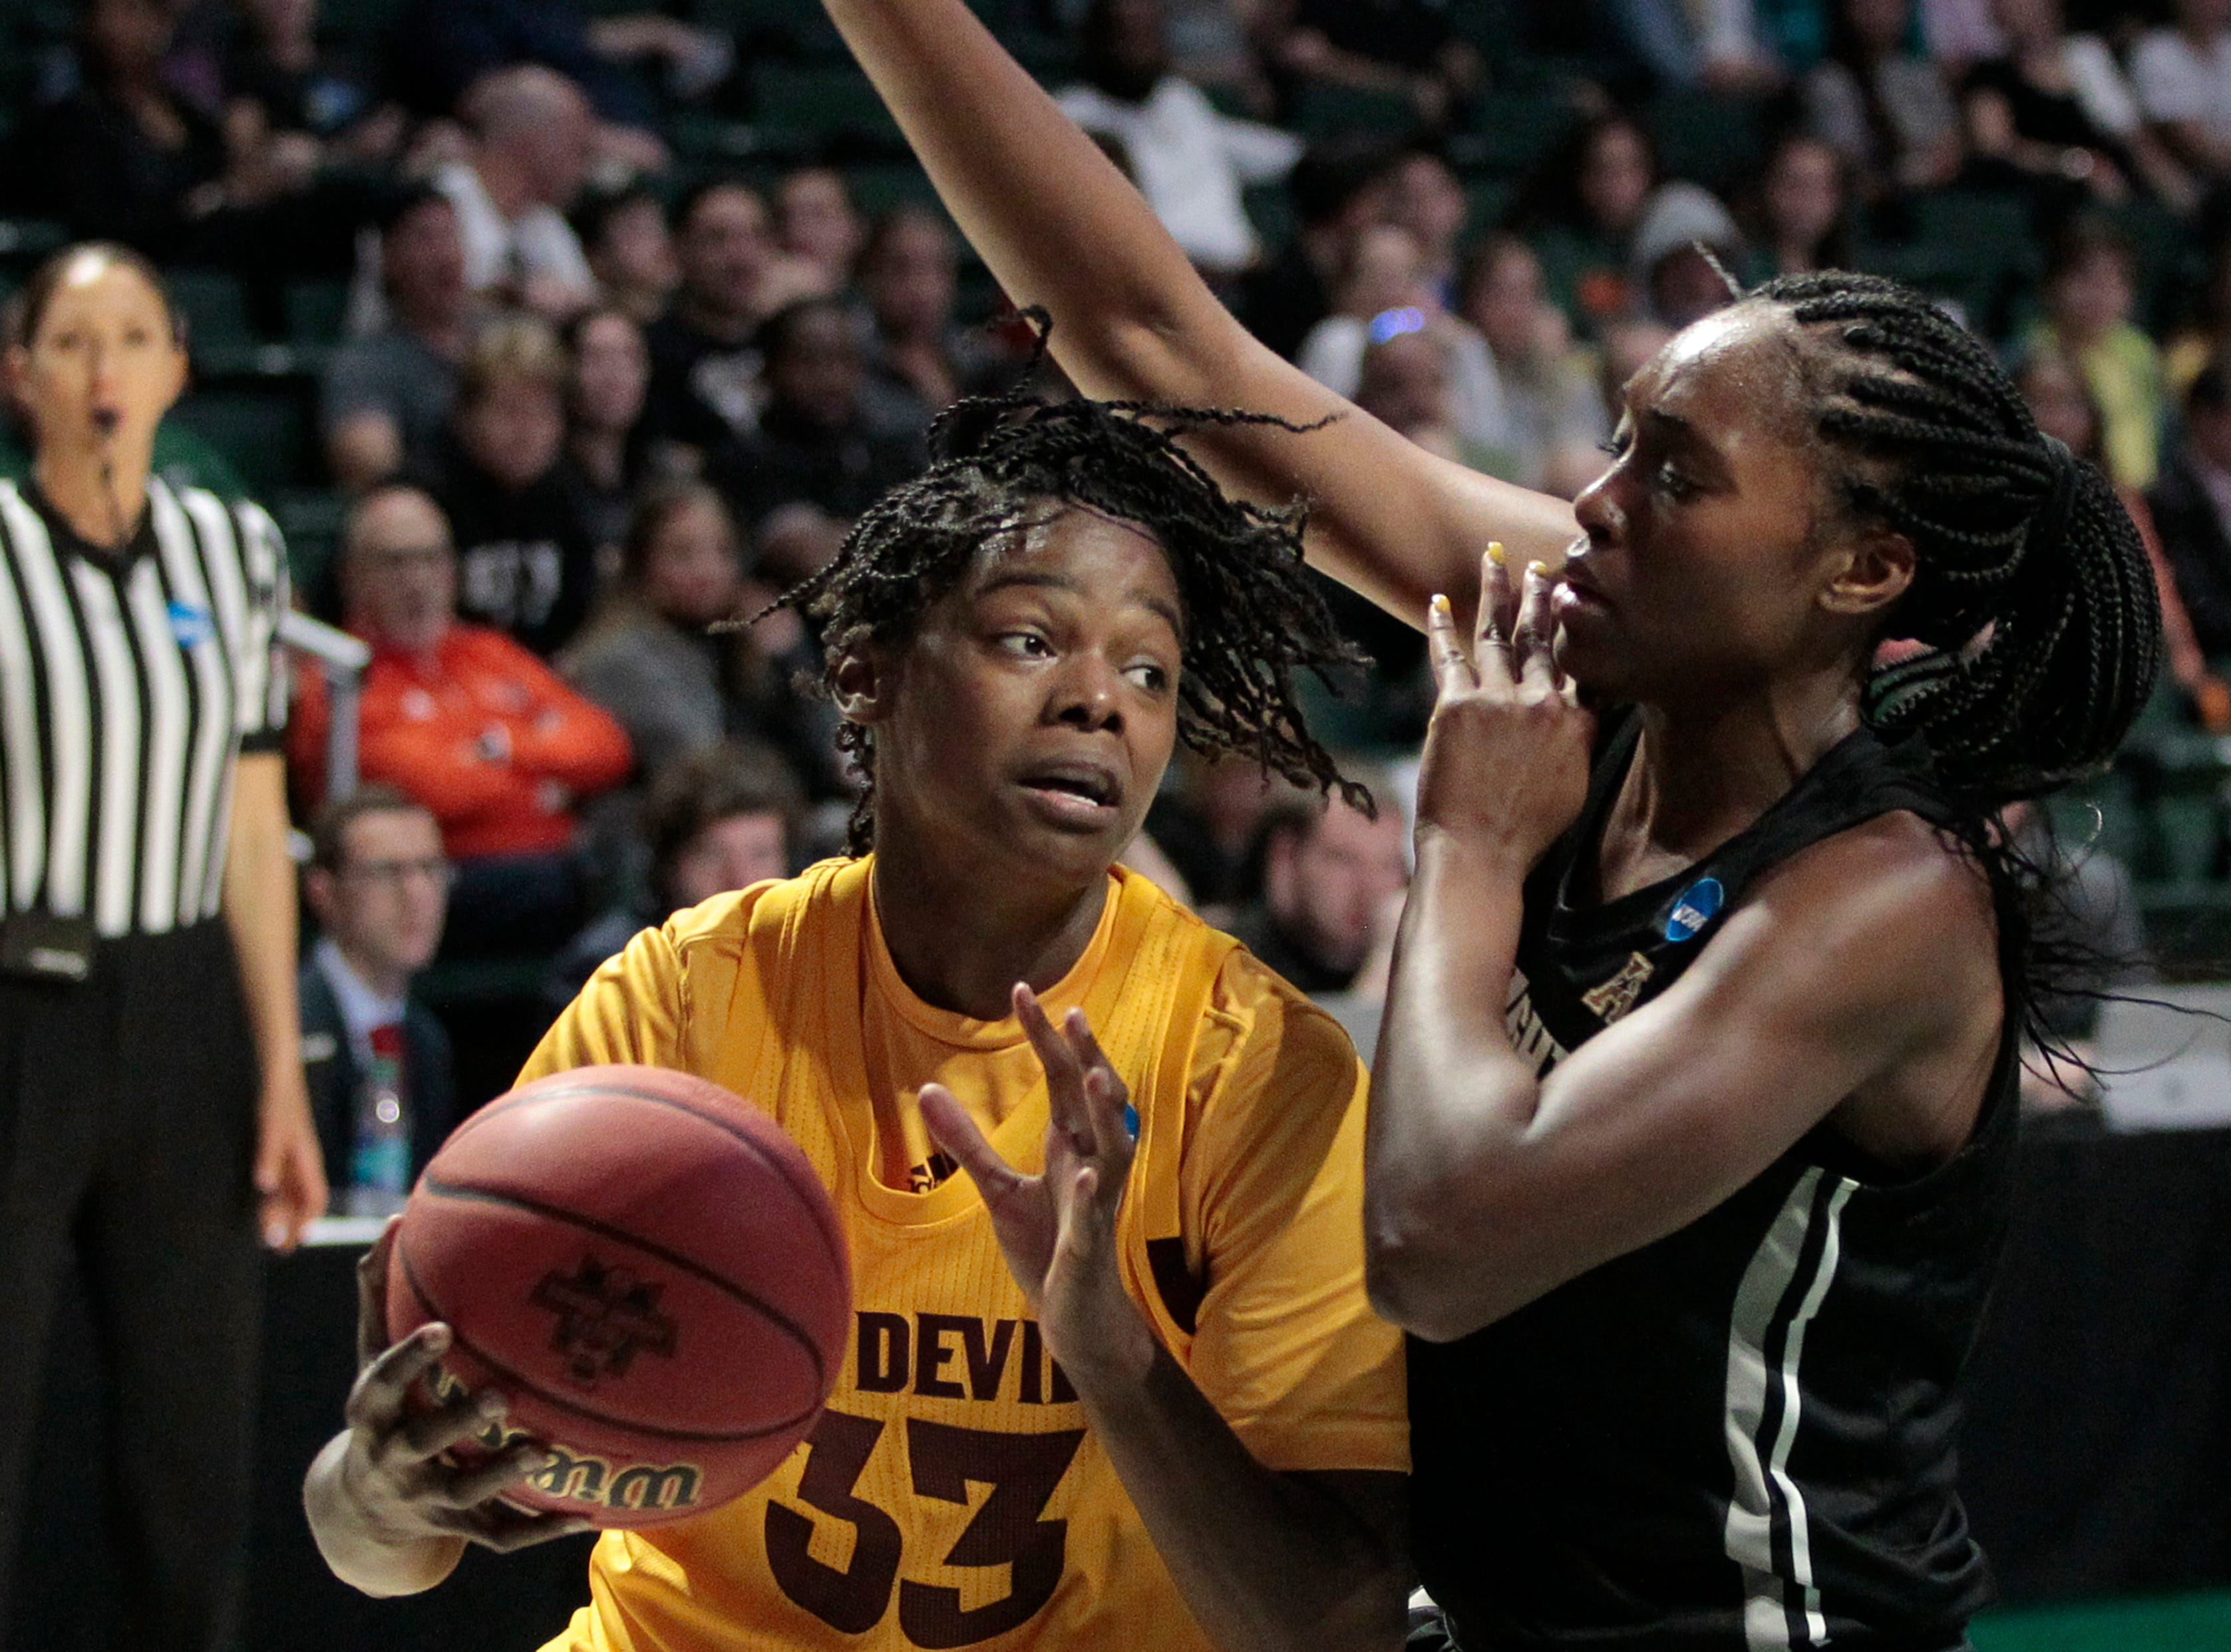 Arizona State center Charnea Johnson-Chapman (33) drives to the basket around UCF forward Masseny Kaba (5), during a first round women's college basketball game in the NCAA Tournament in Friday, March 22, 2019, in Coral Gables, Fla. Arizona State defeated UCF 60-45. (AP Photo/Luis M. Alvarez)